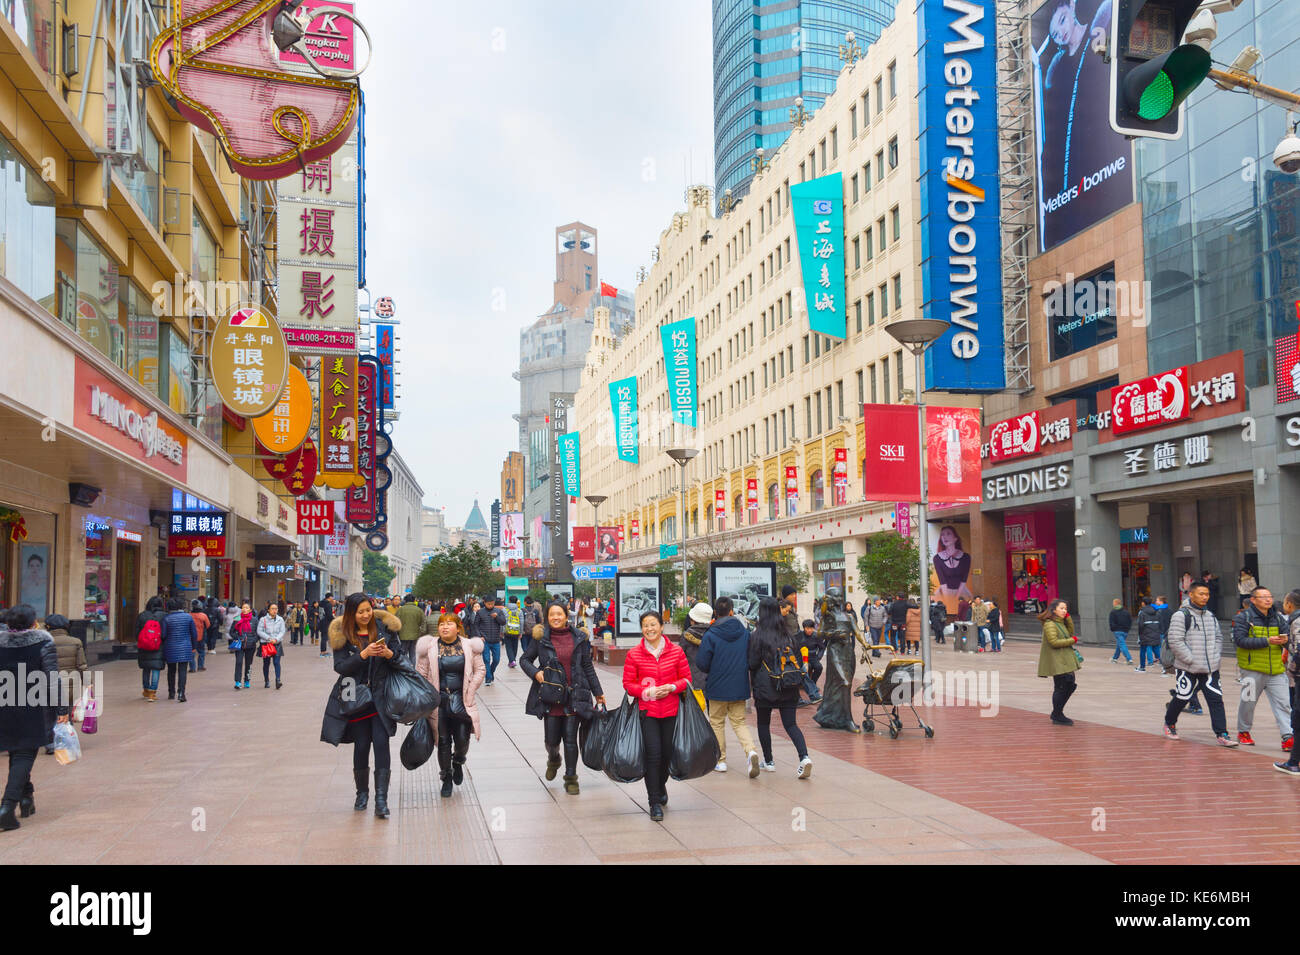 SHANGHAI, CHINA - DEC 28, 2016: People walking on Nanjiing road in Downtown of Shanghai. The area is the main shopping - Stock Image